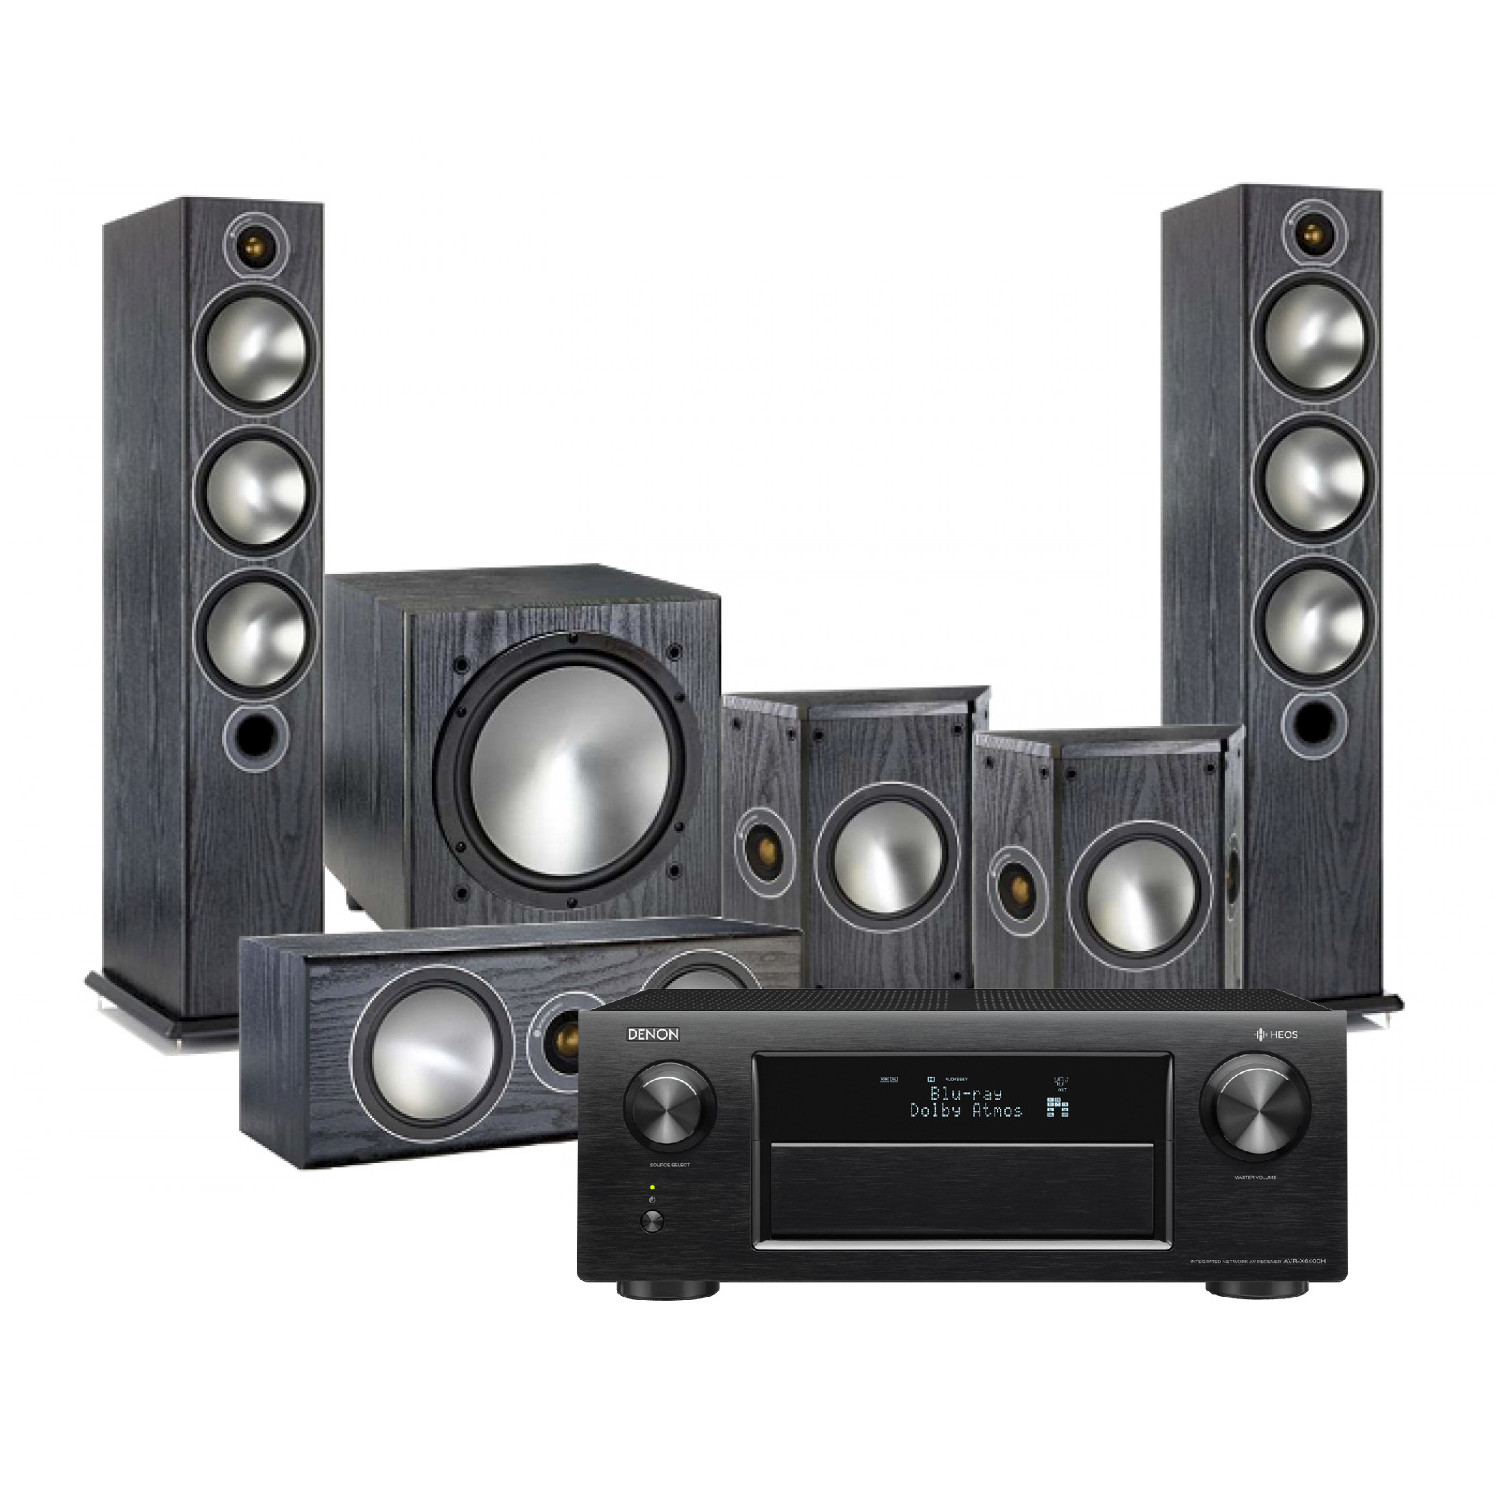 Denon AVR-X6400H AV Receiver with Monitor Audio Bronze 6 AV Speakers